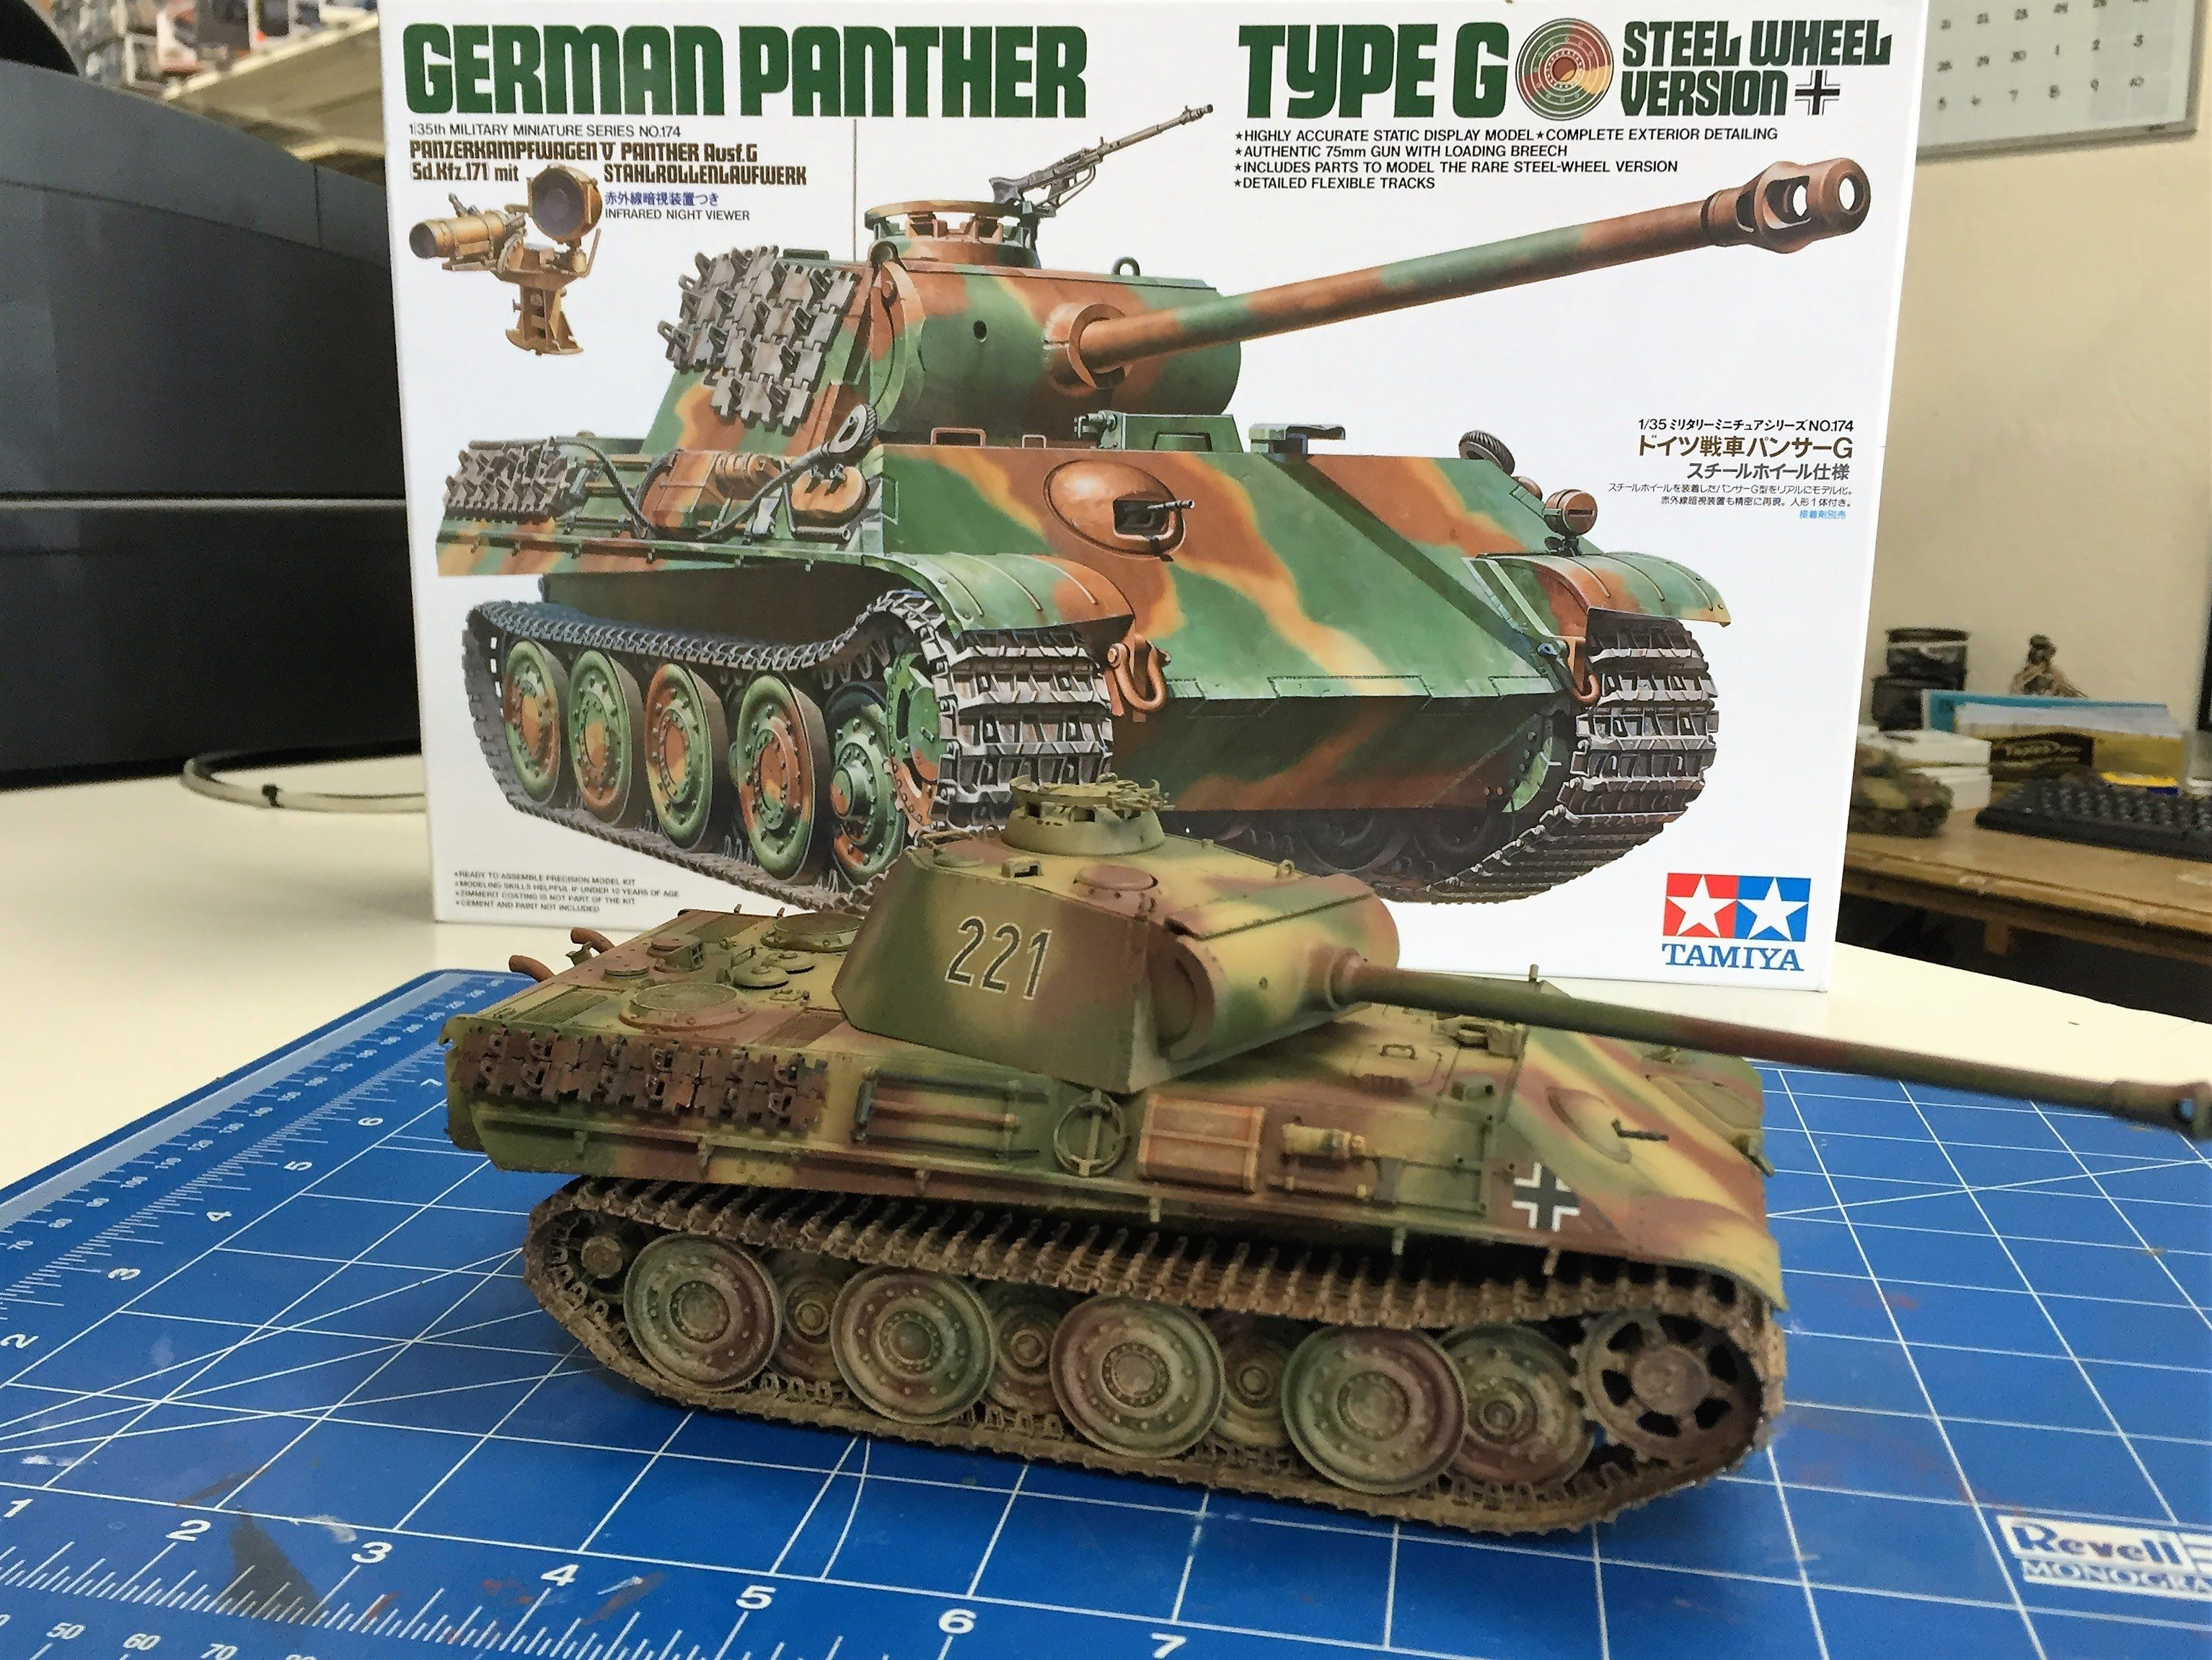 Building the Tamiya 1/35 Panther G steel wheel version with